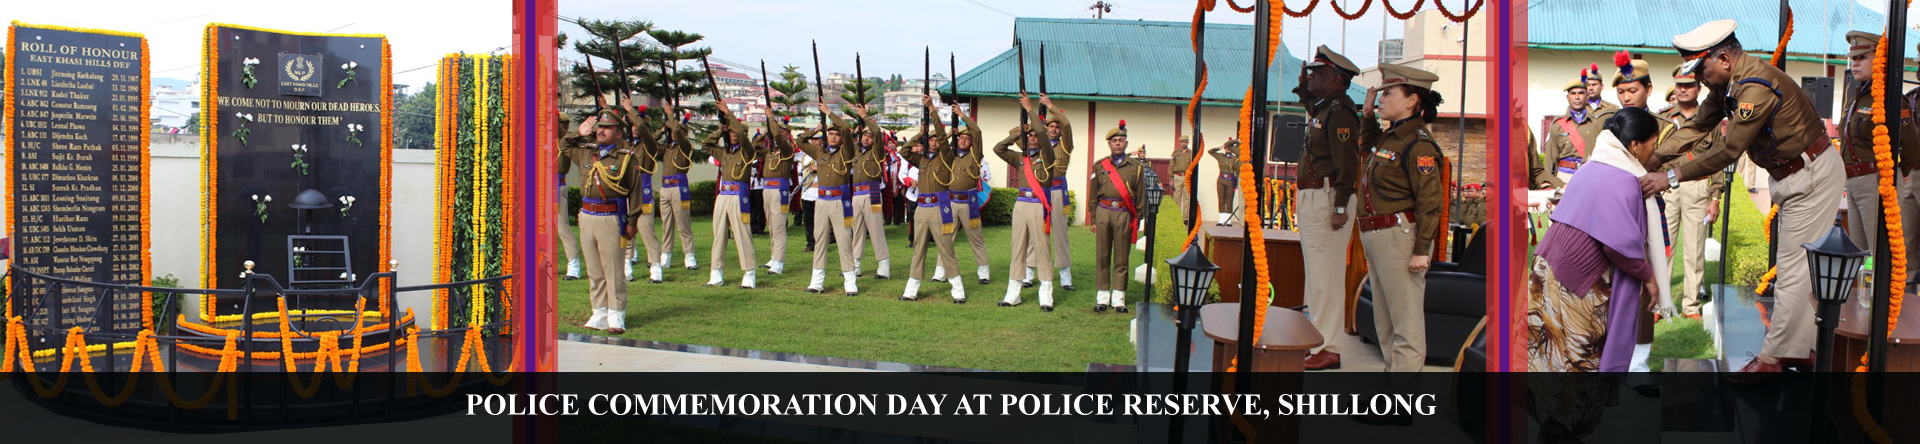 police commeration day 2019 at police reserve shillong